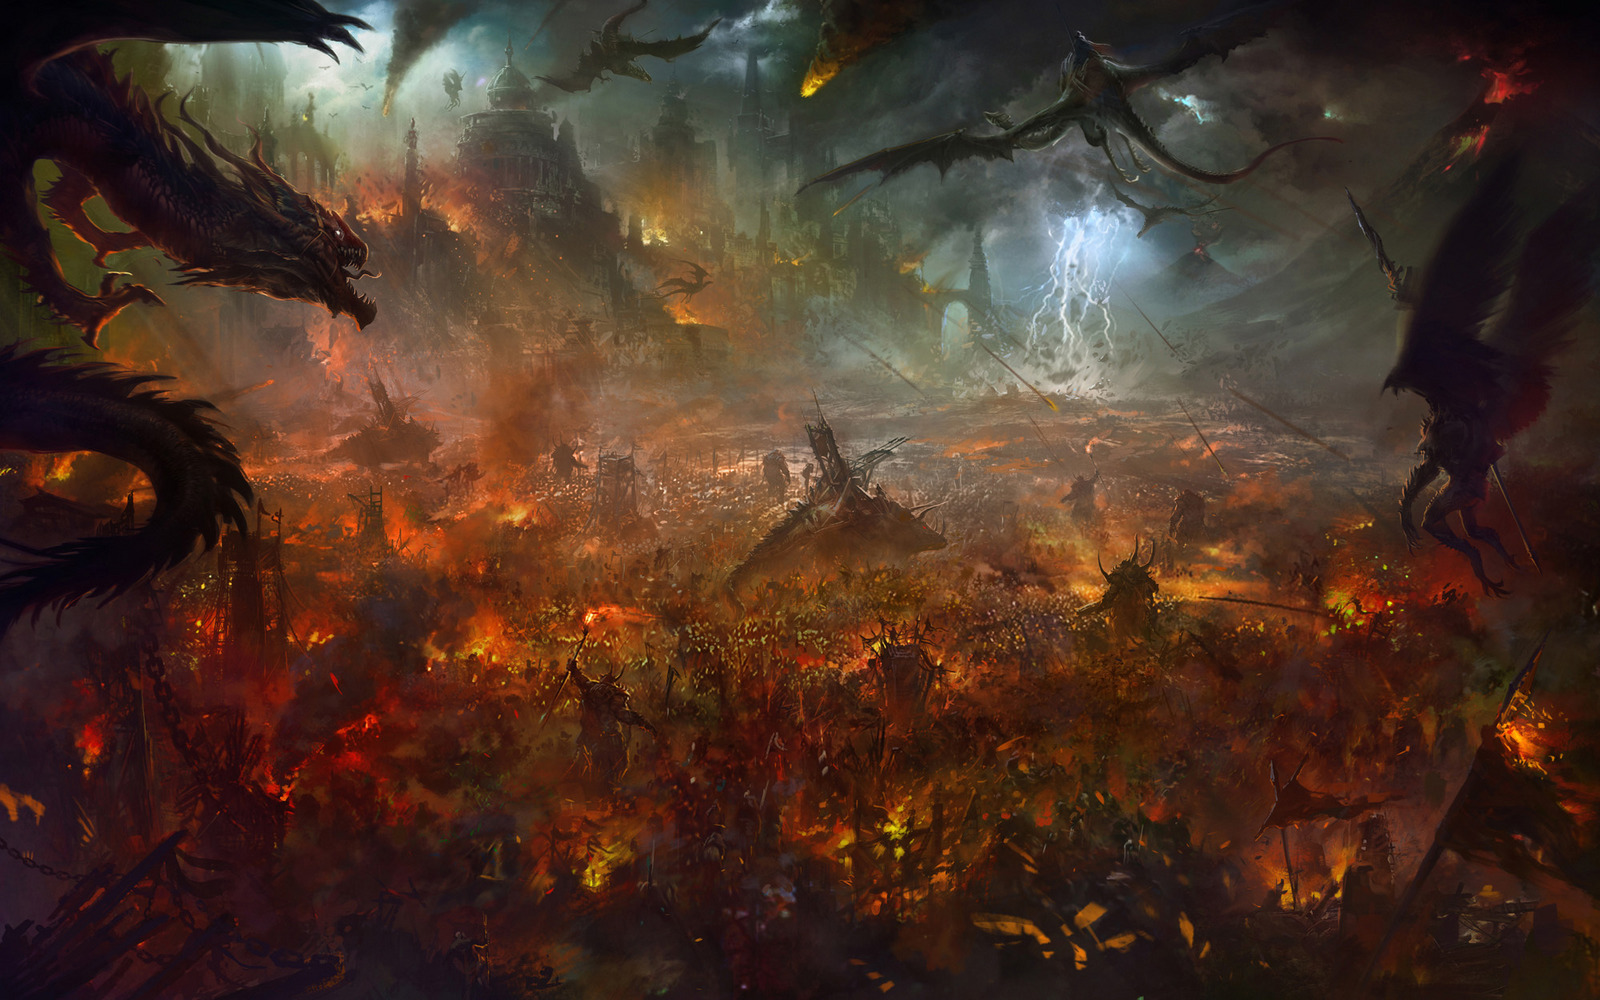 1600x1000_Battle_of_the_fire_earth_2d_illustration_fantasy_b.jpg